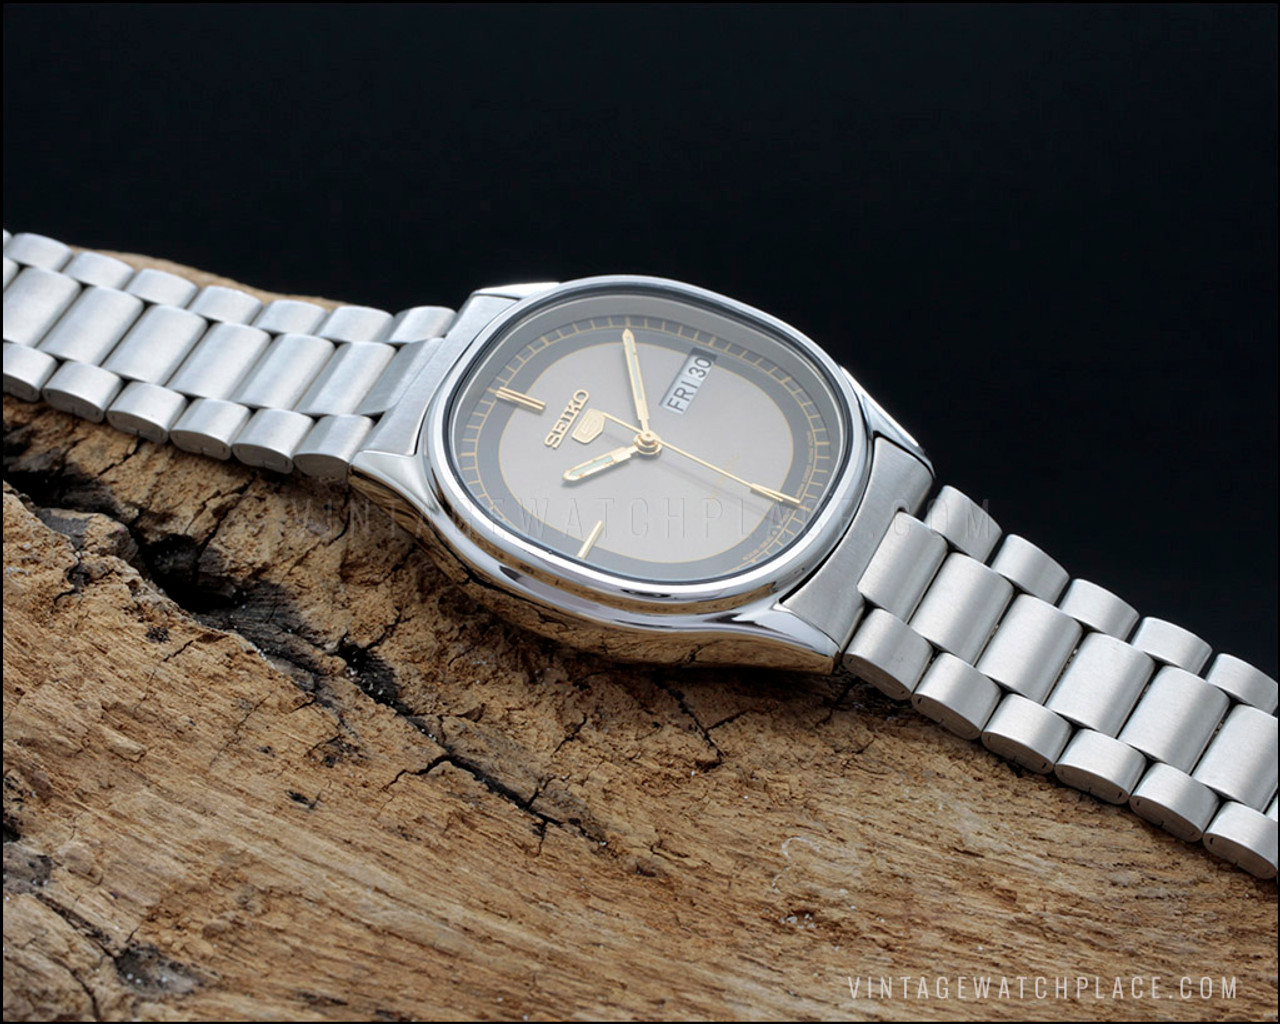 New Old Stock Seiko 5 automatic vintage watch, 6309-5820 ...